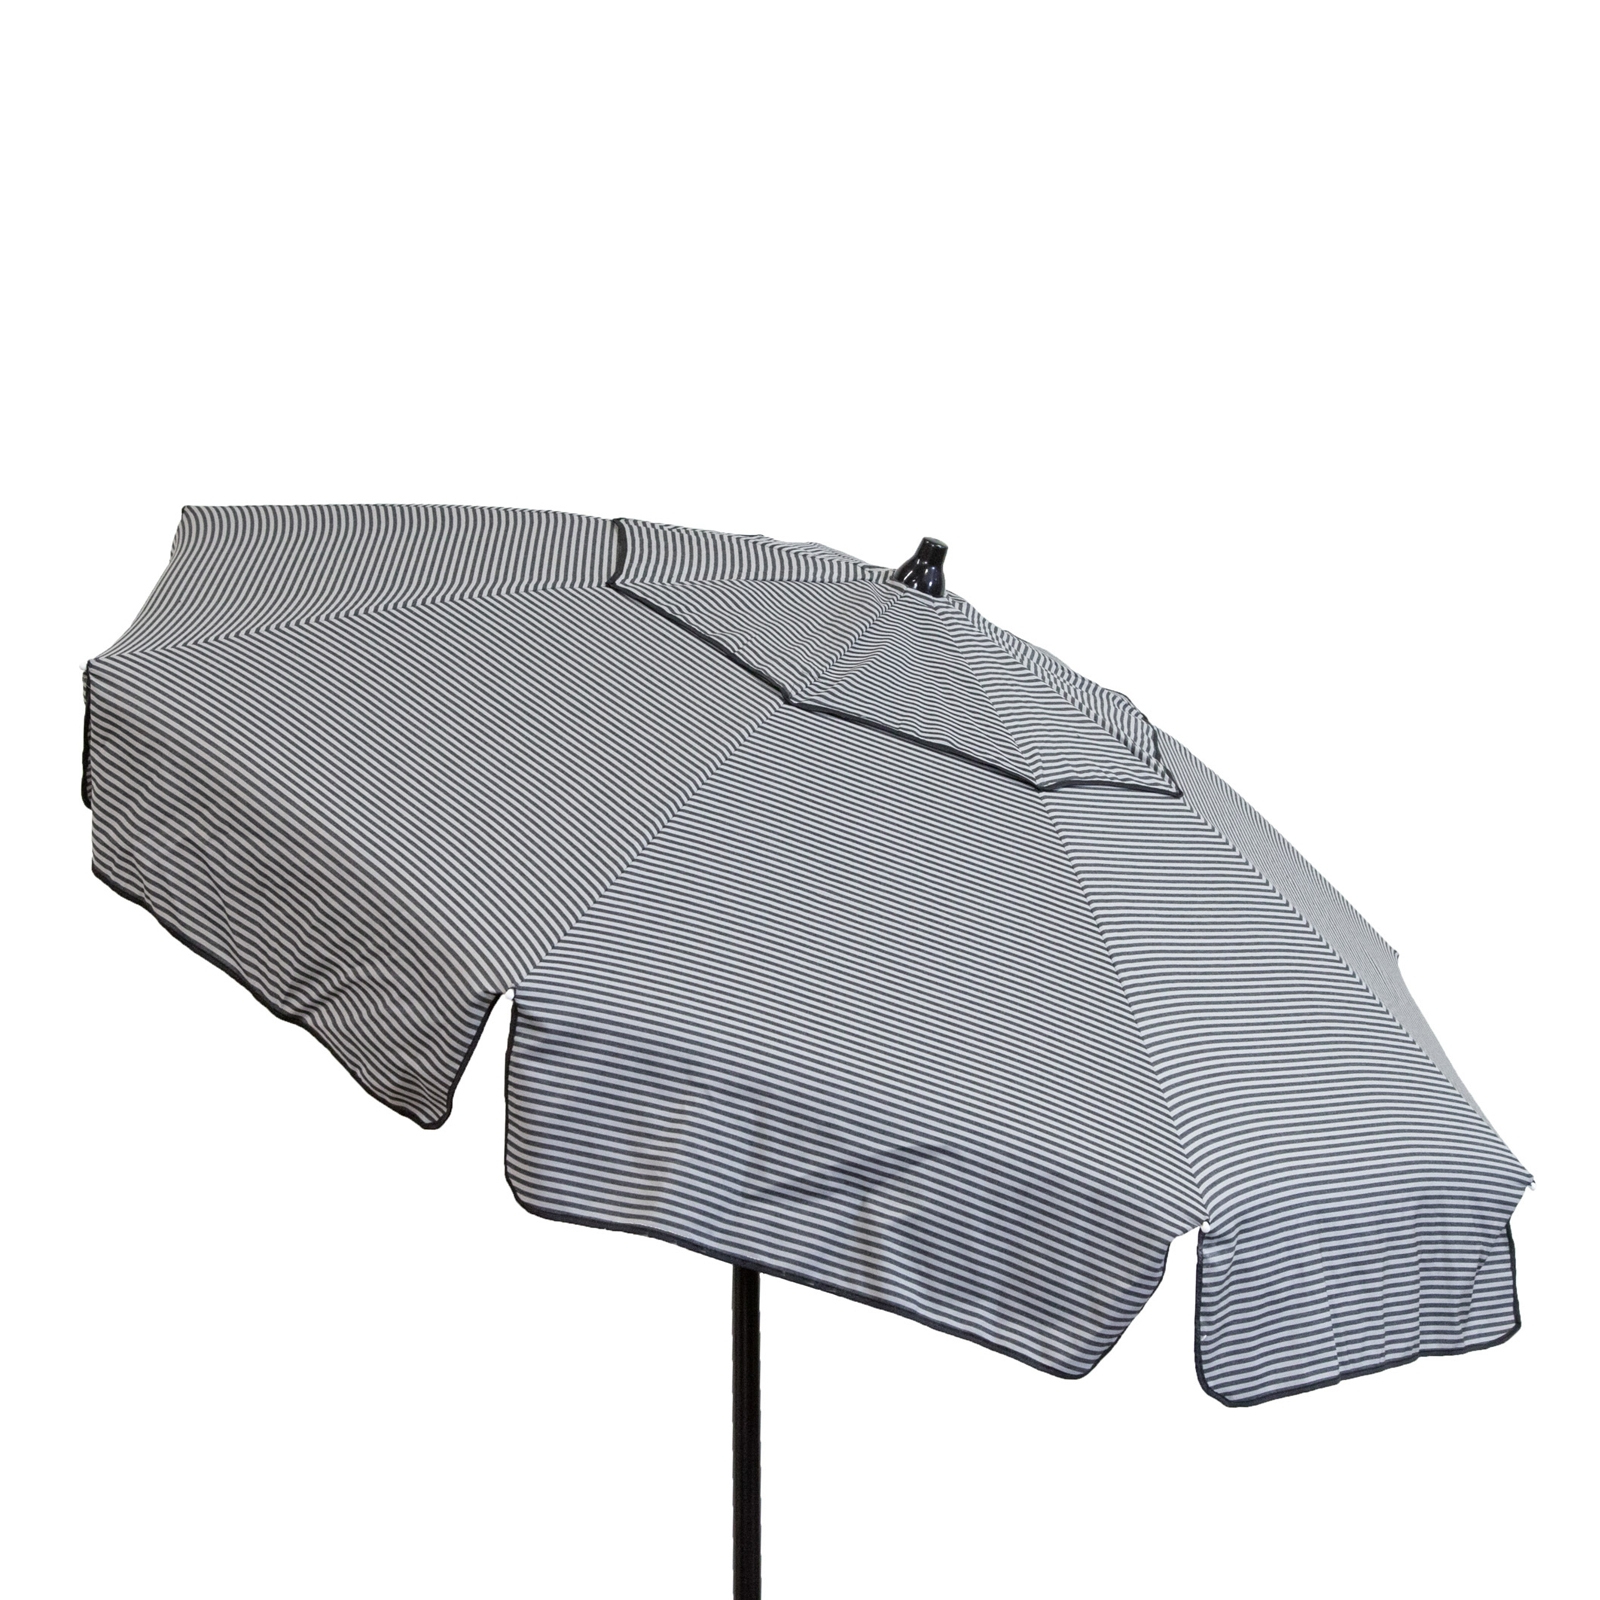 Preferred 6ft Home Patio Tilt Market Umbrella Classic Italian Style, (many Colors) Within Italian Market Umbrellas (View 17 of 20)